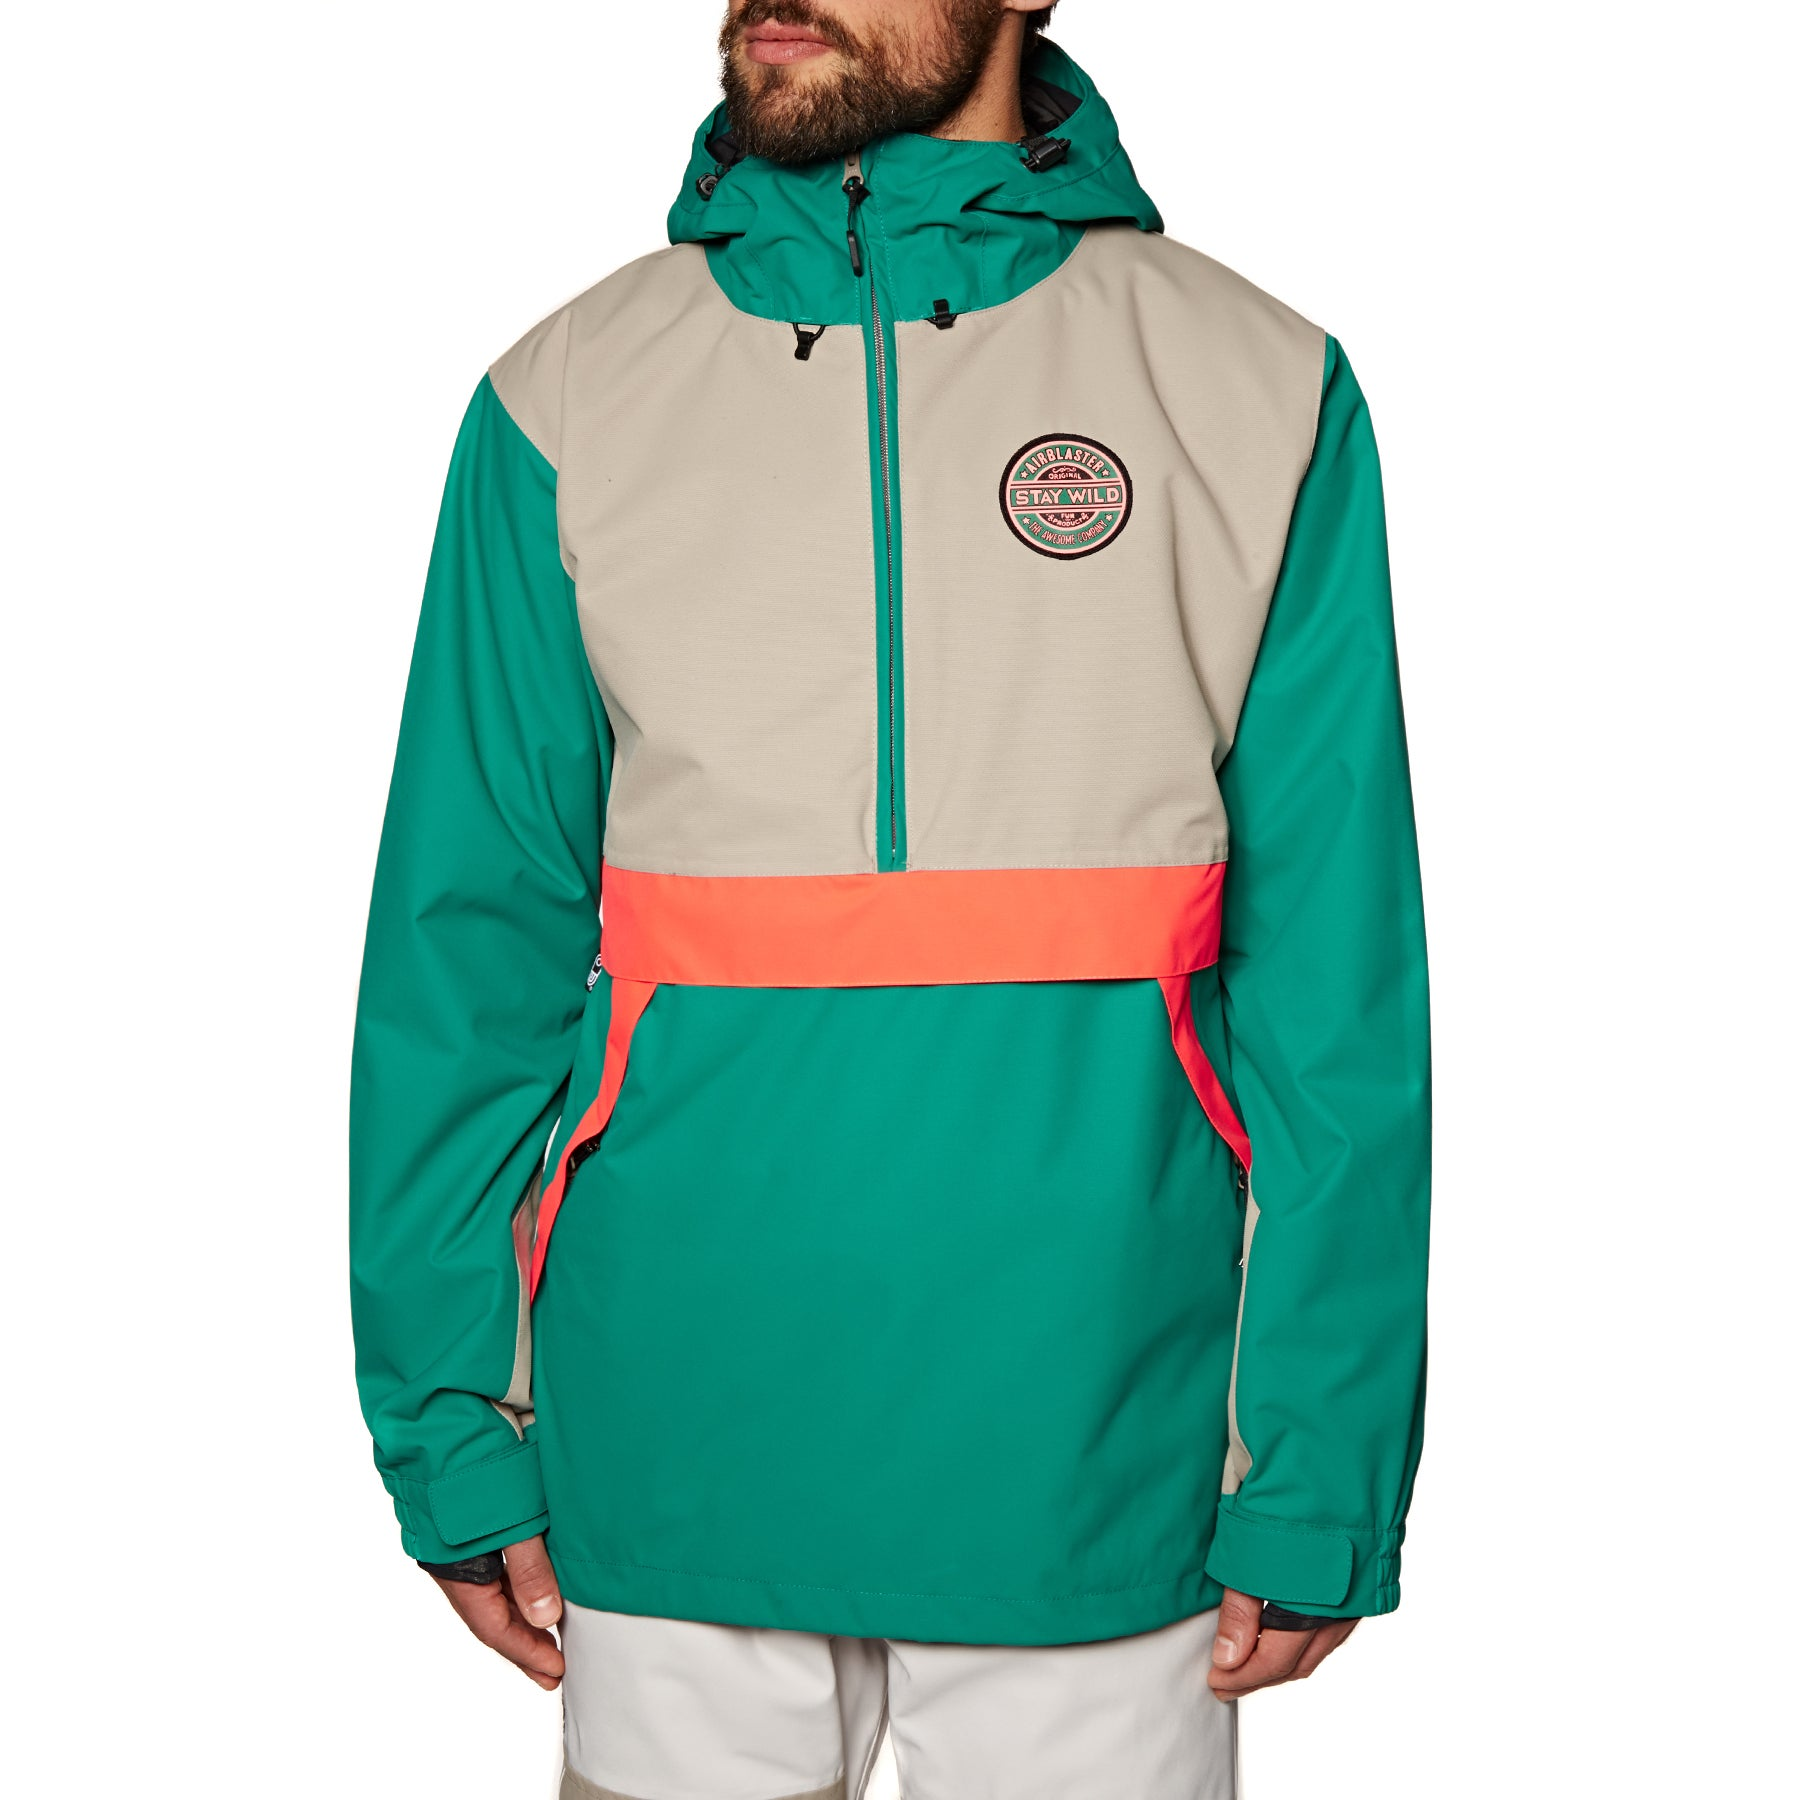 Blouson pour Snowboard Airblaster Trenchover - Hot Teal